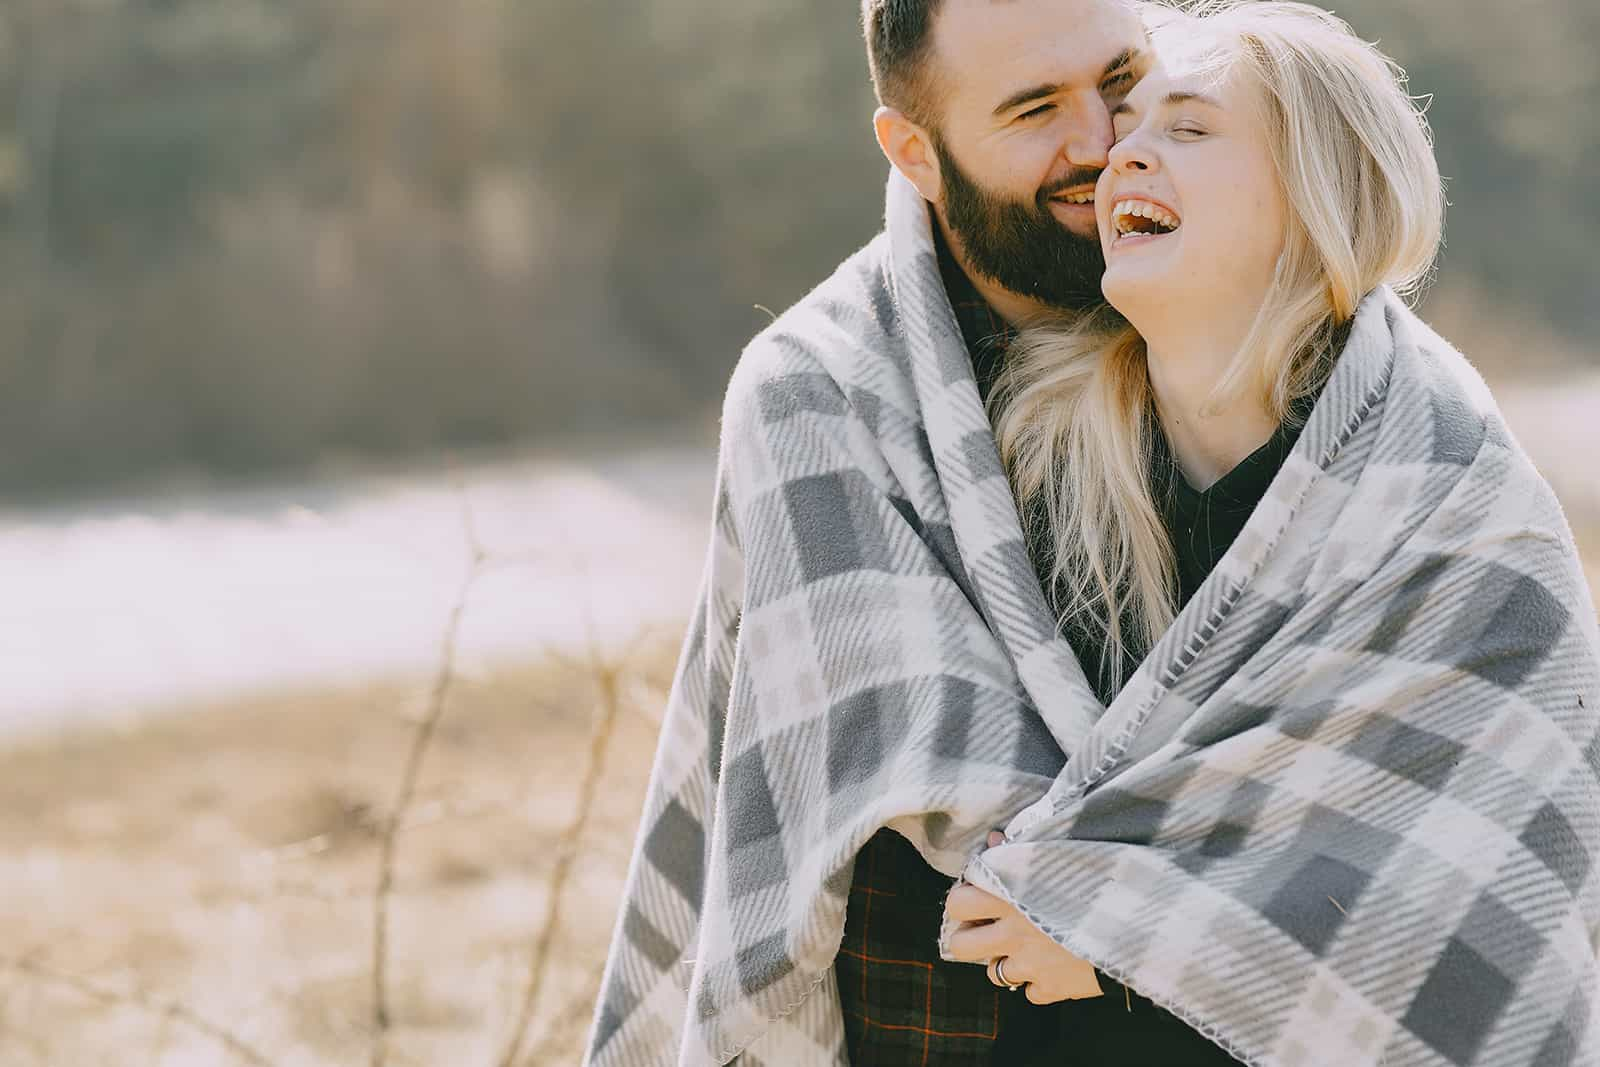 a smiling man embracing his smiling girlfriend while standing outside covered with blanket